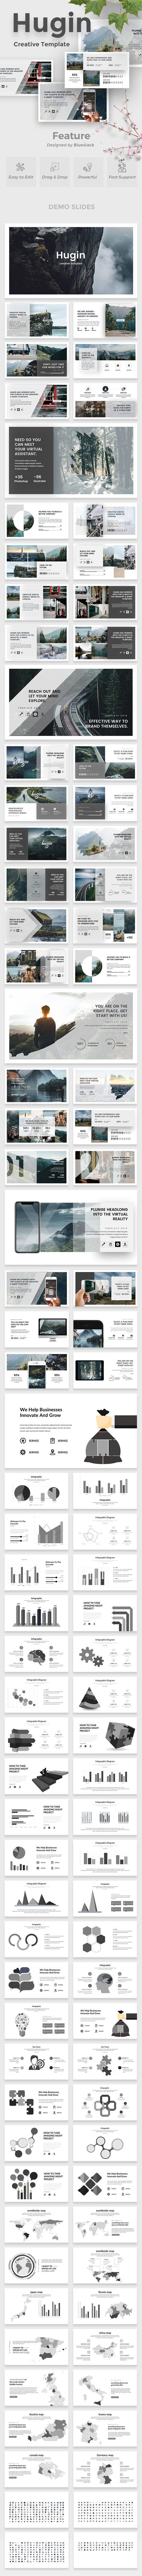 Hugin Creative Powerpoint Template #placeholder #infographic • Download ➝ https://graphicriver.net/item/hugin-creative-powerpoint-template/21285431?ref=pxcr